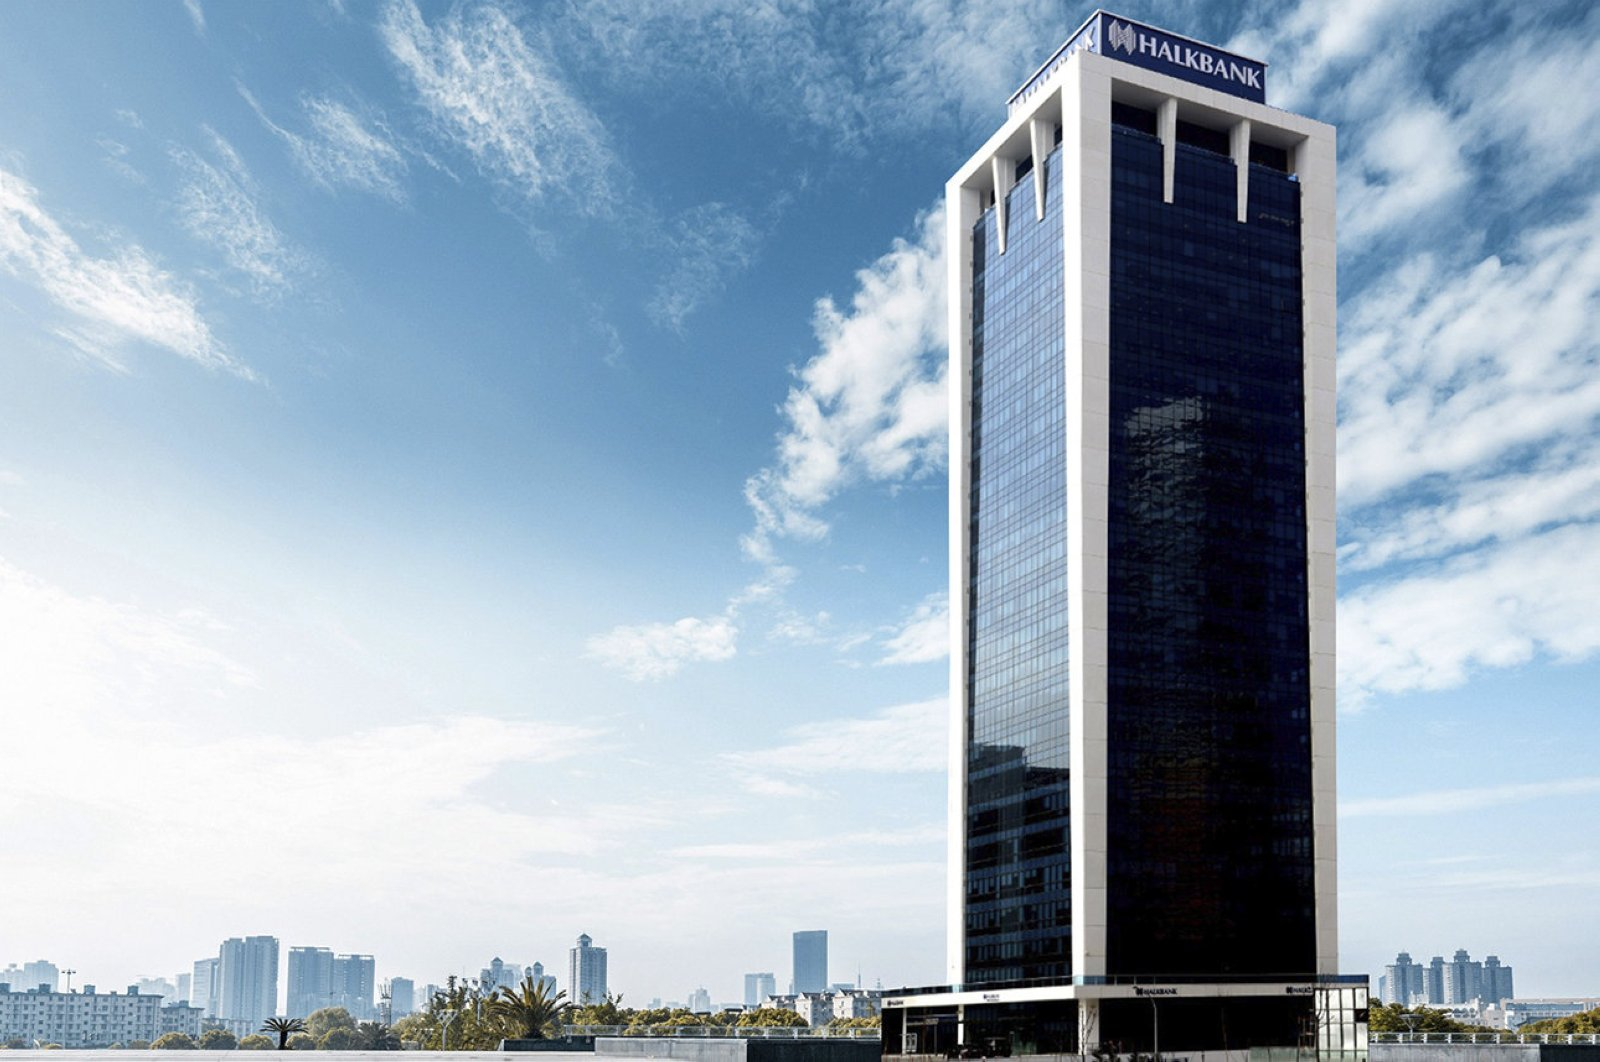 The headquarters of Turkey's public Halkbank in the Ataşehir district of Istanbul. (File Photo)